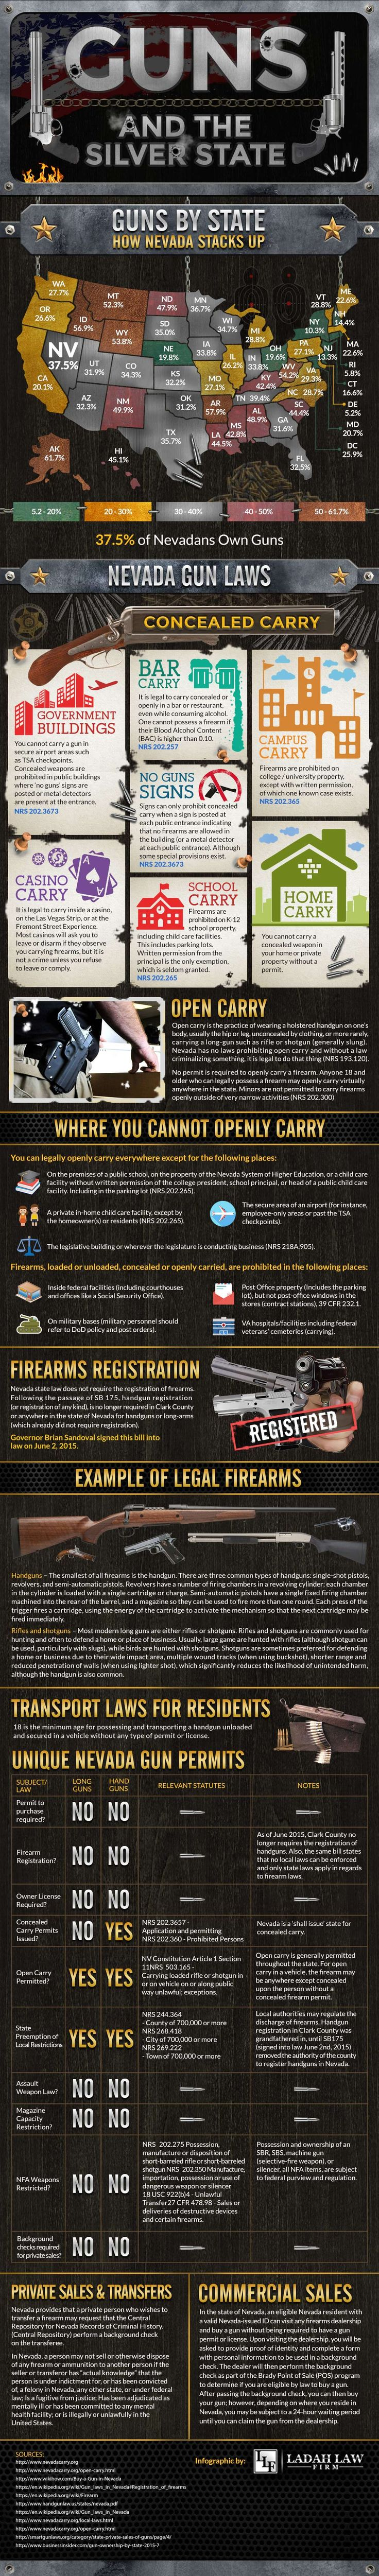 Ladah Law Firm has created this infographic with the intention of helping people understand the laws surrounding open & concealed carry as well as a number of other related Nevada gun laws. It outlines some key details on Nevada gun laws including concealed & open carry, transport, permits, legal guns, sales, etc. It also showcases the state by state breakdown of gun ownership and how Nevada stacks up to other states.